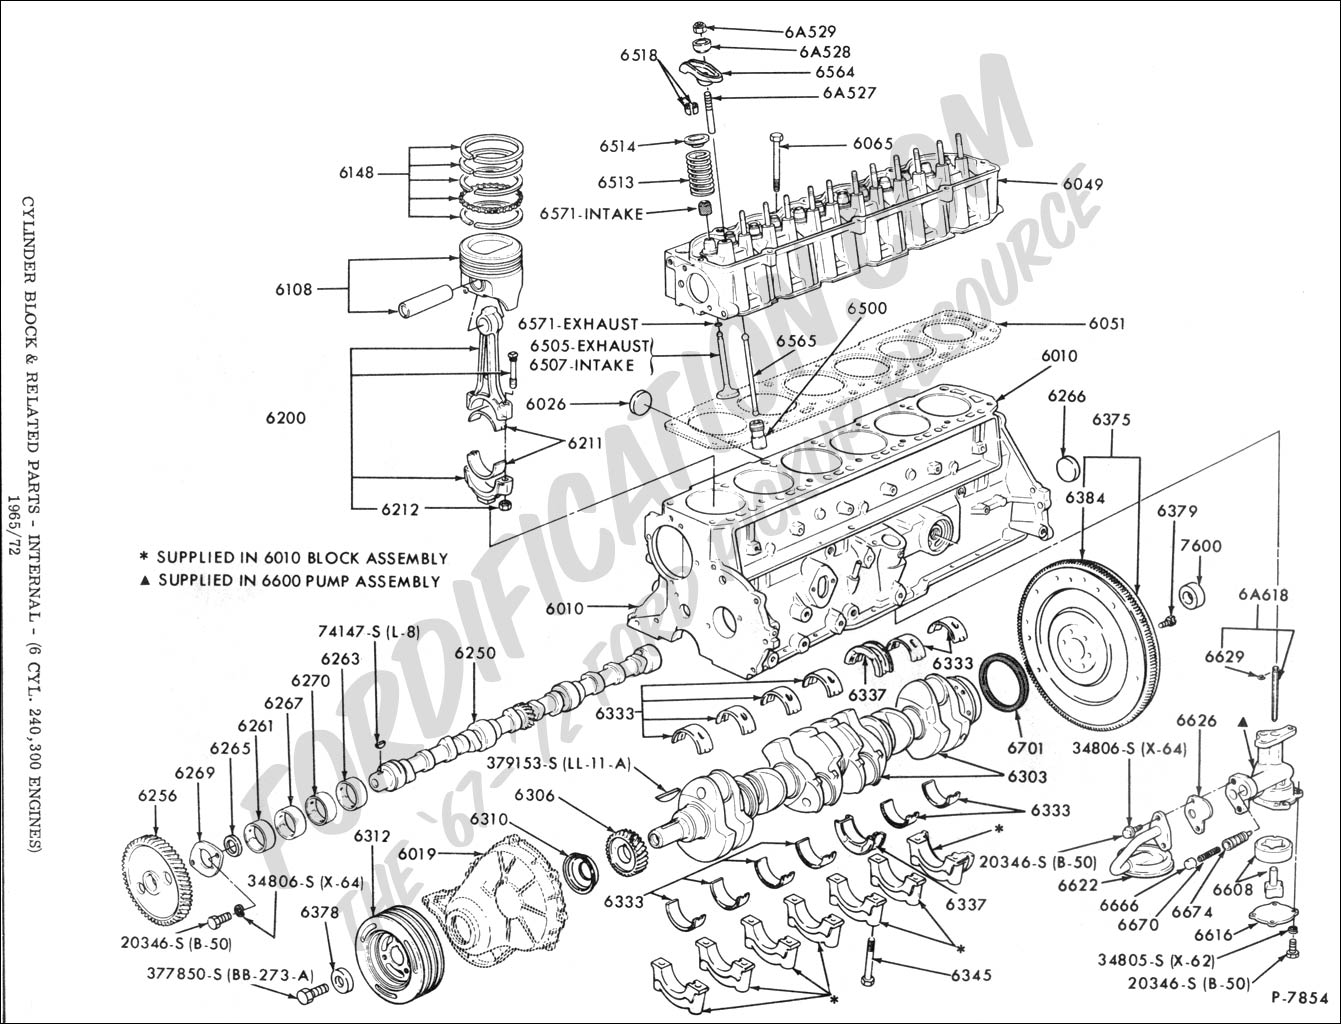 Ford Truck Technical Drawings and Schematics - Section E - Engine and  Related Components